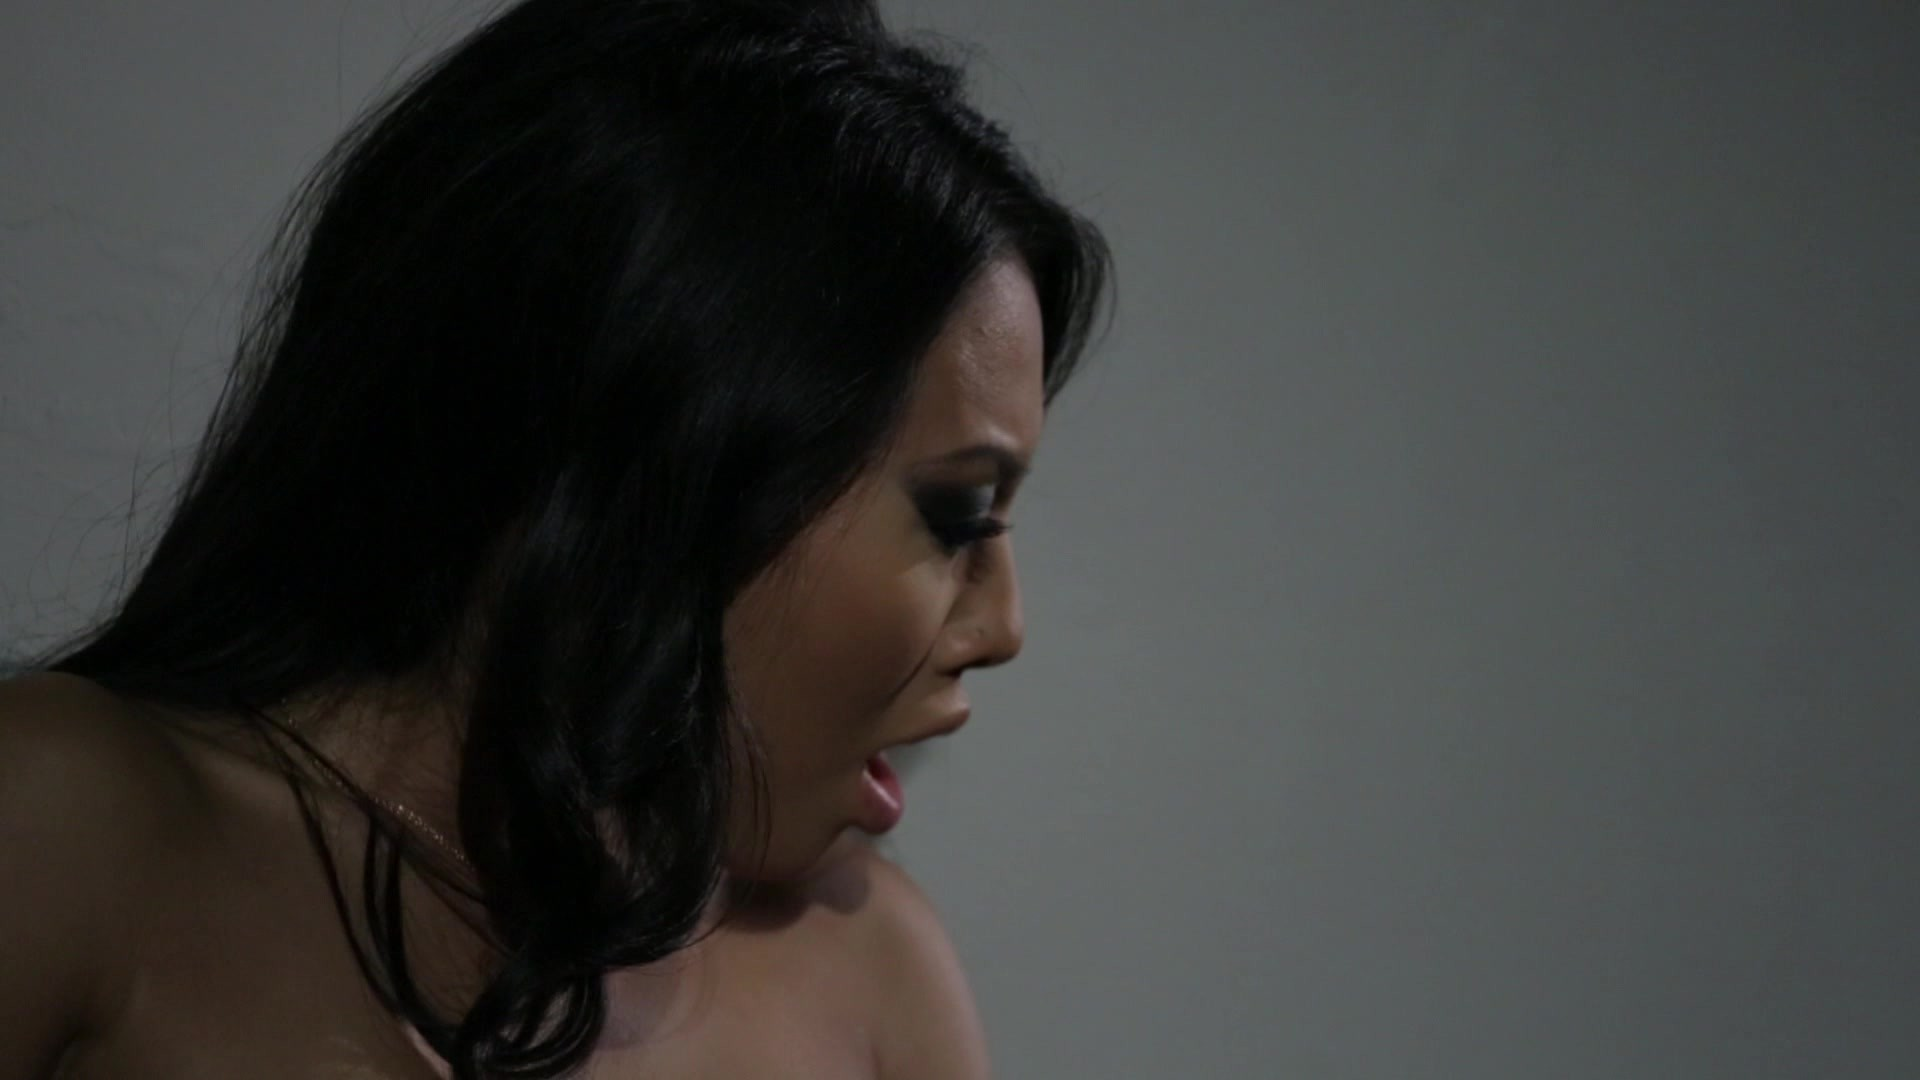 Scene with Asa Akira - image 8 out of 19